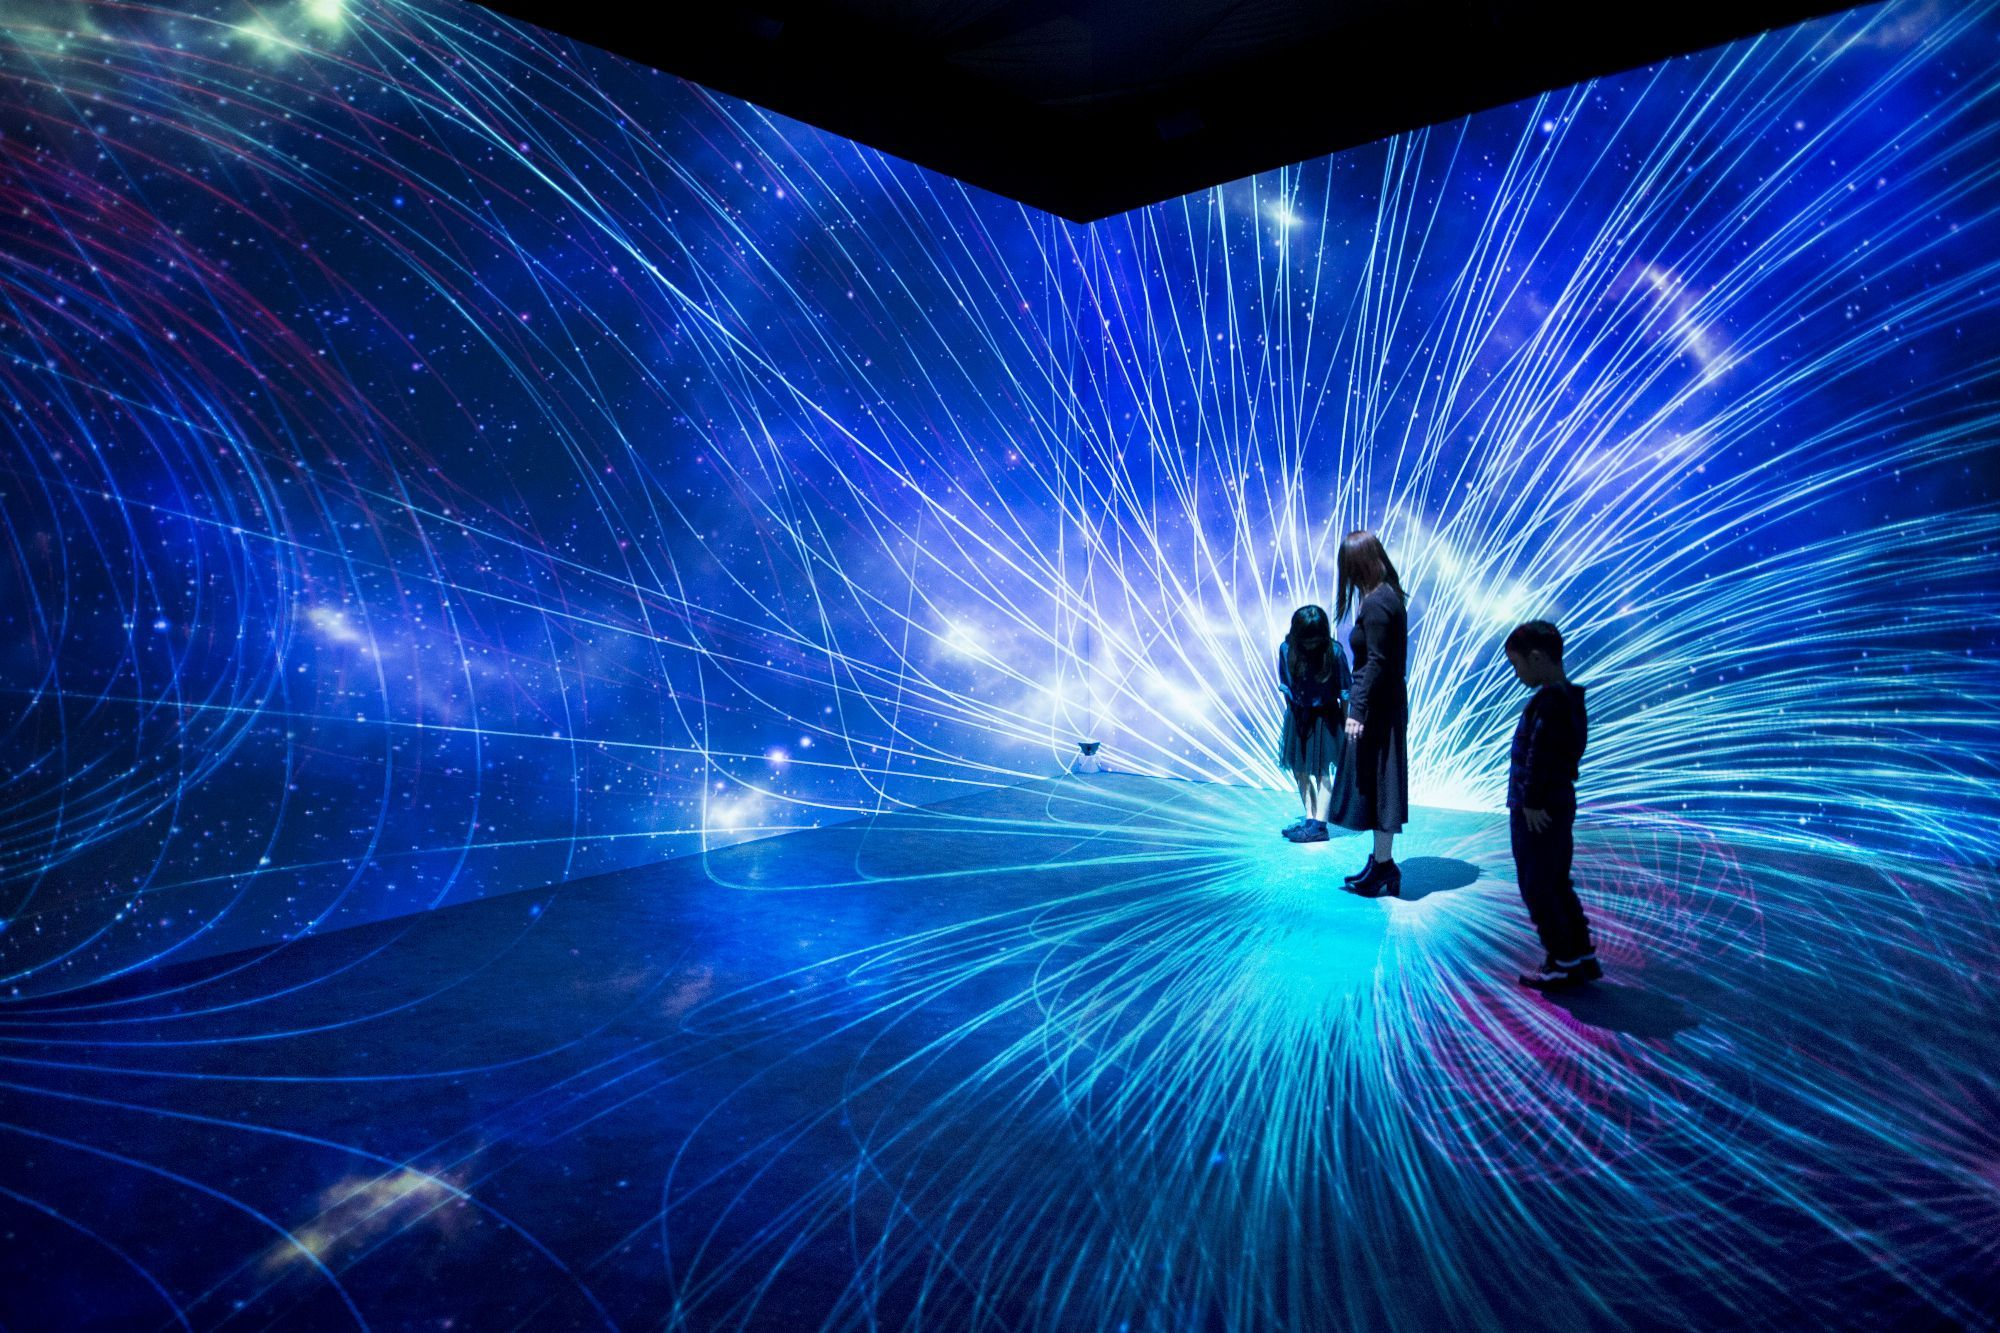 Gorgeous Deep Sea Room Activated by Movement